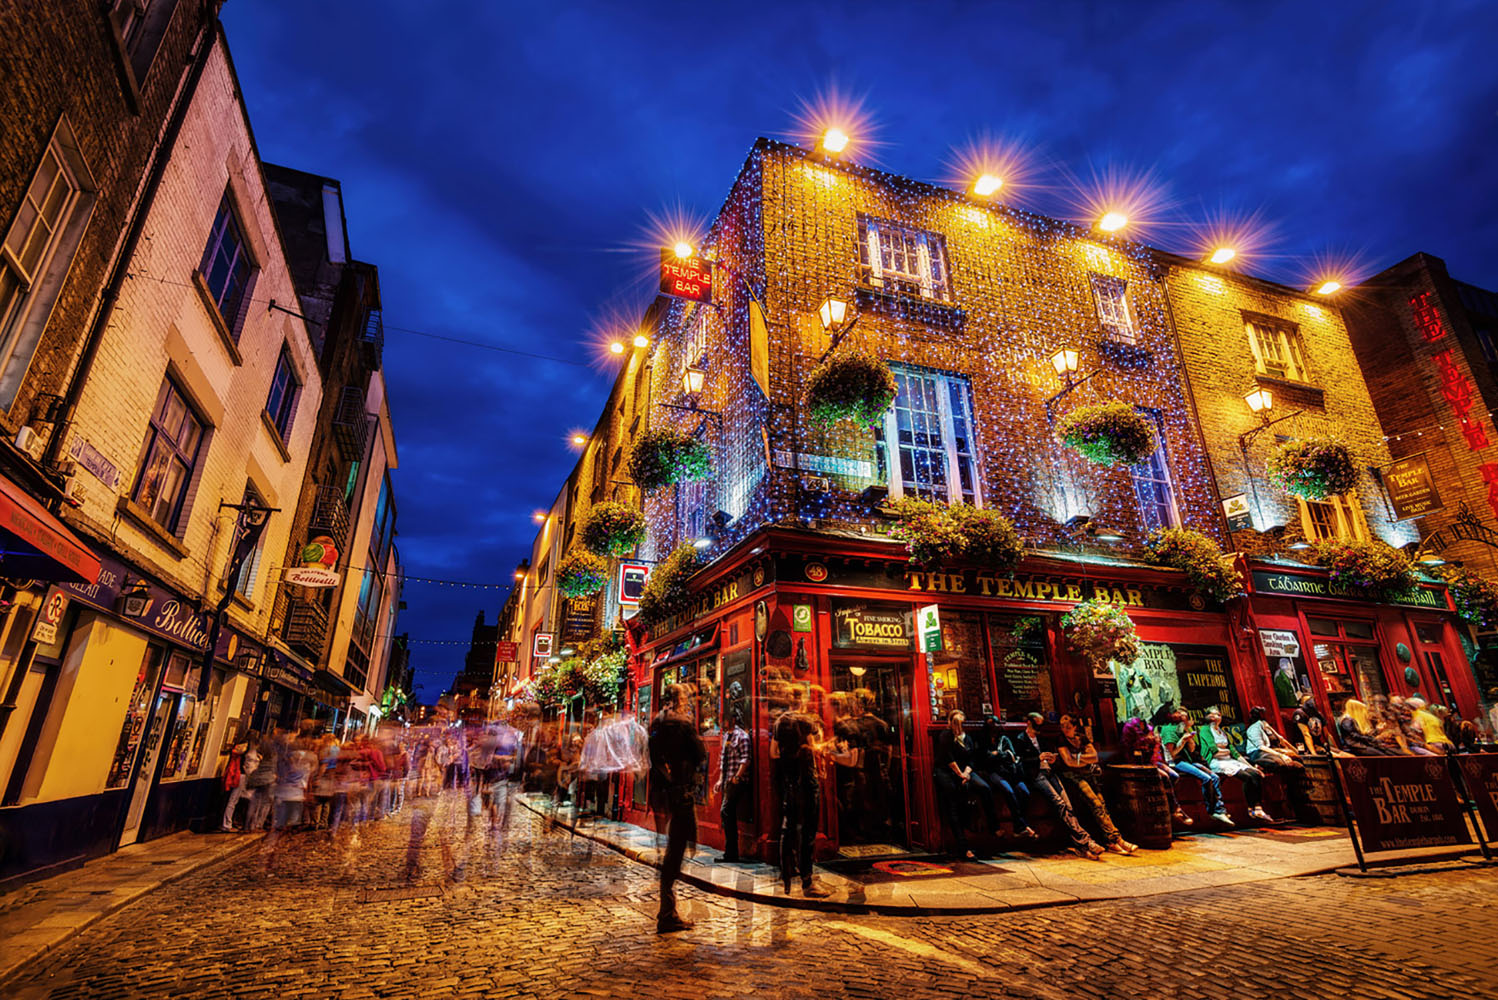 The Temple bar in Dublin at night.